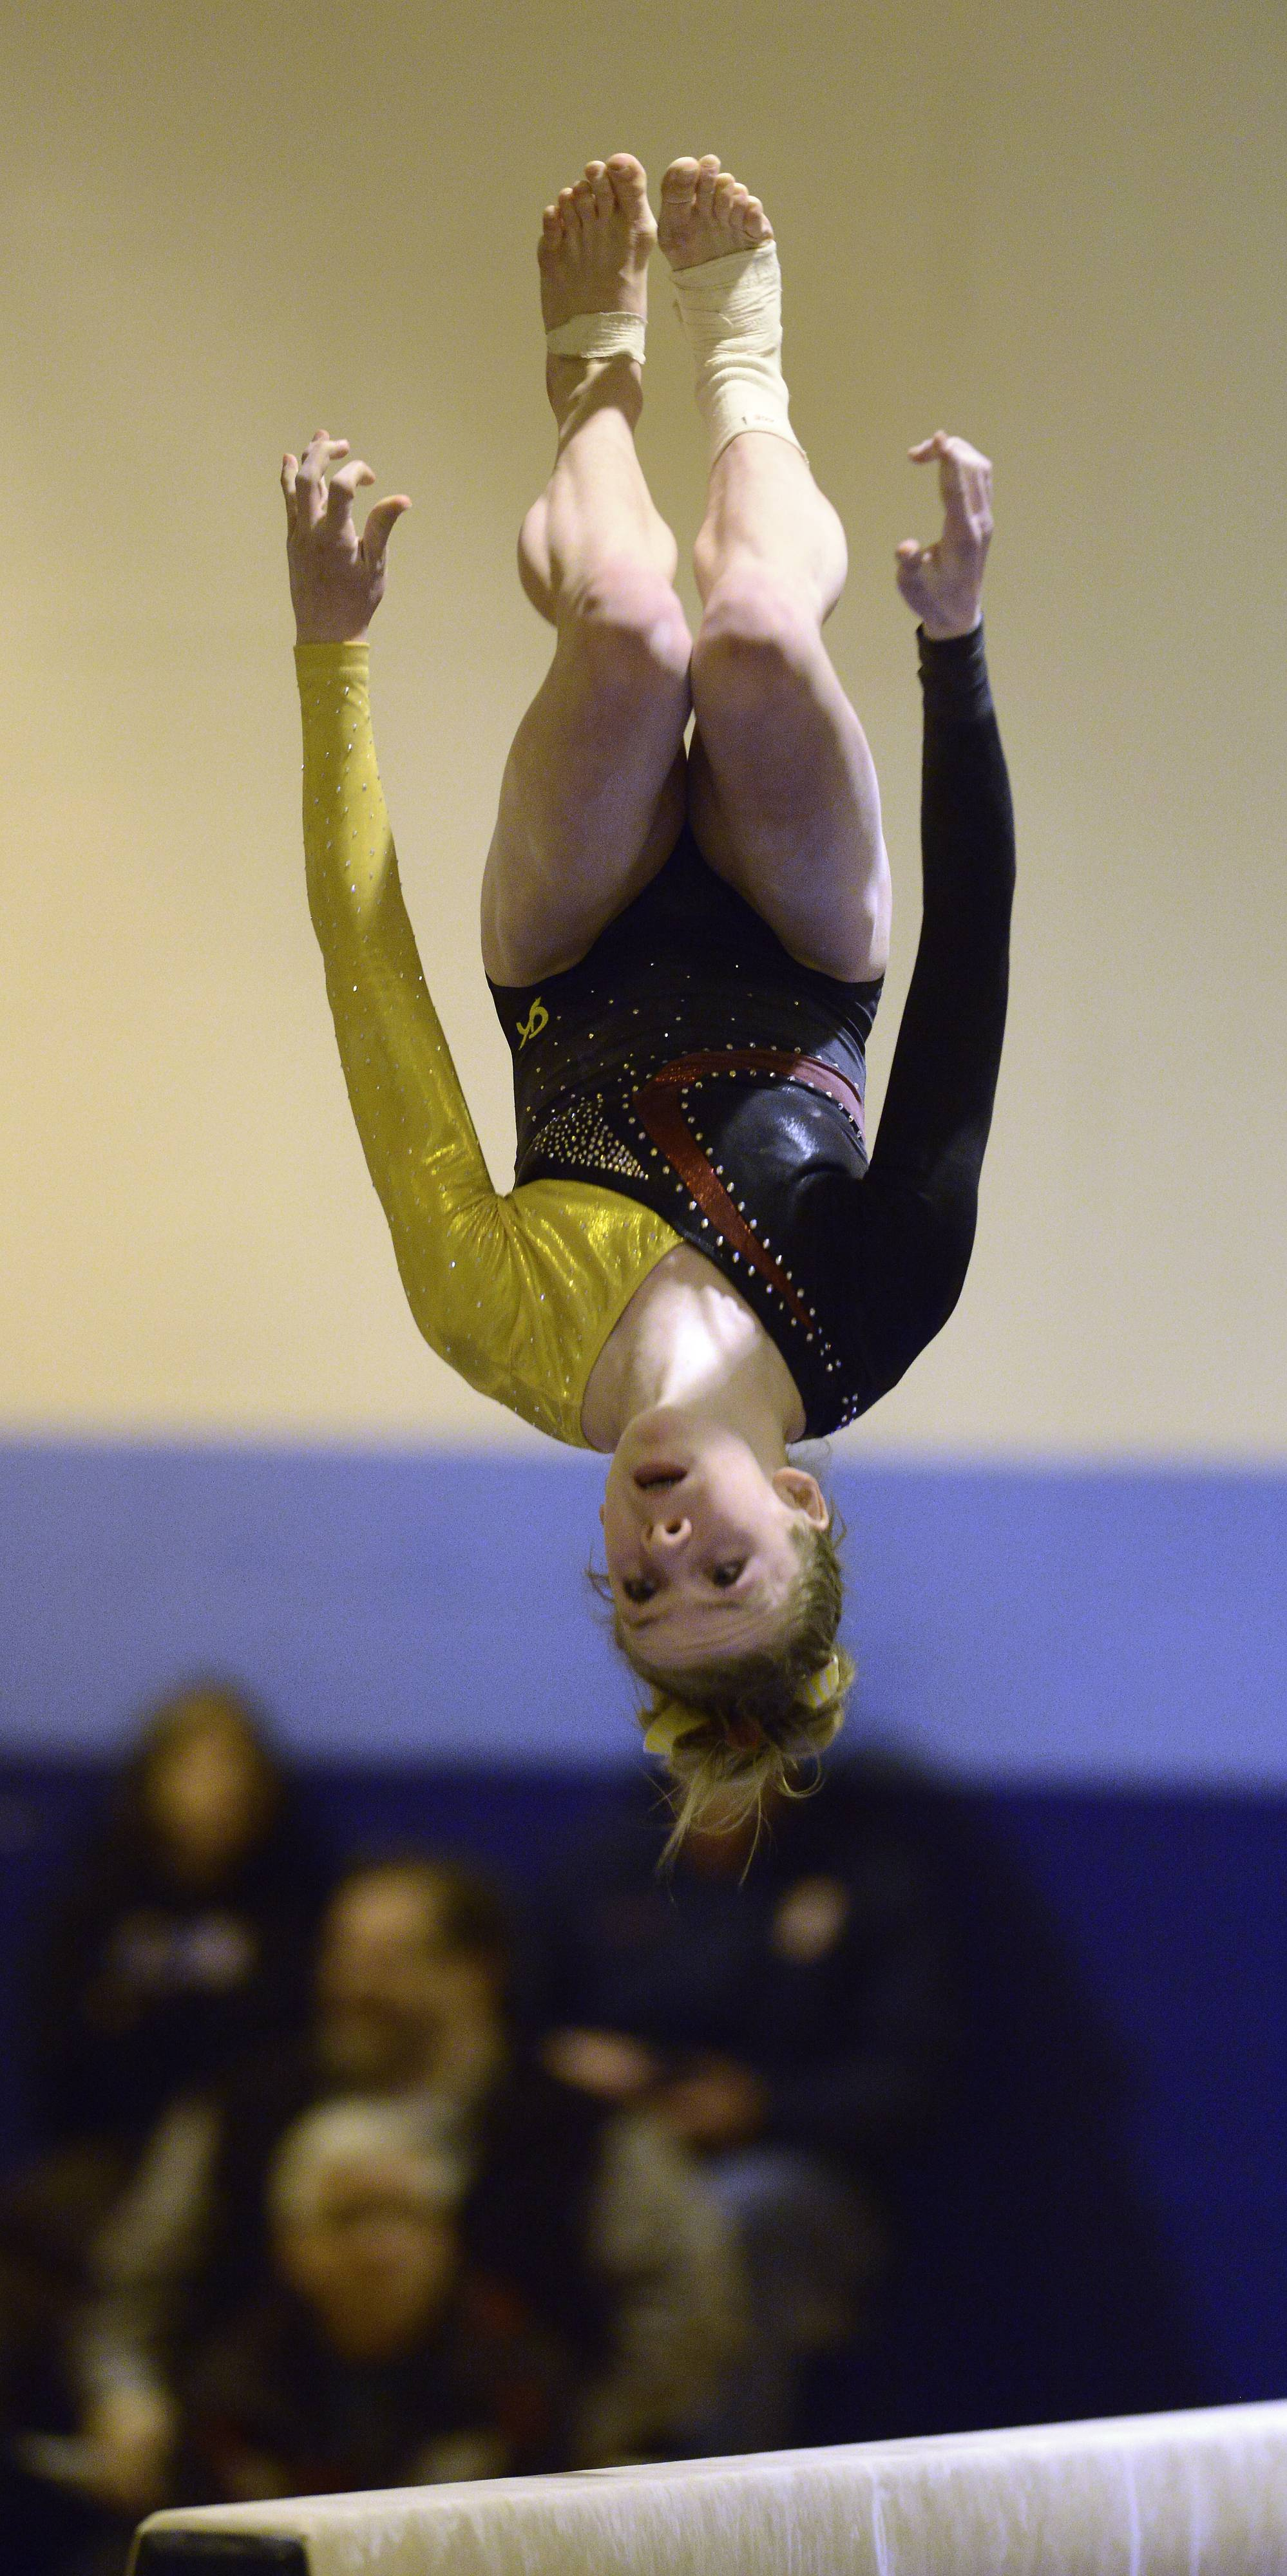 Schaumburg's Alyssa Kiszka competes on the balance beam during Tuesday's regional gymnastics meet in Mount Prospect.